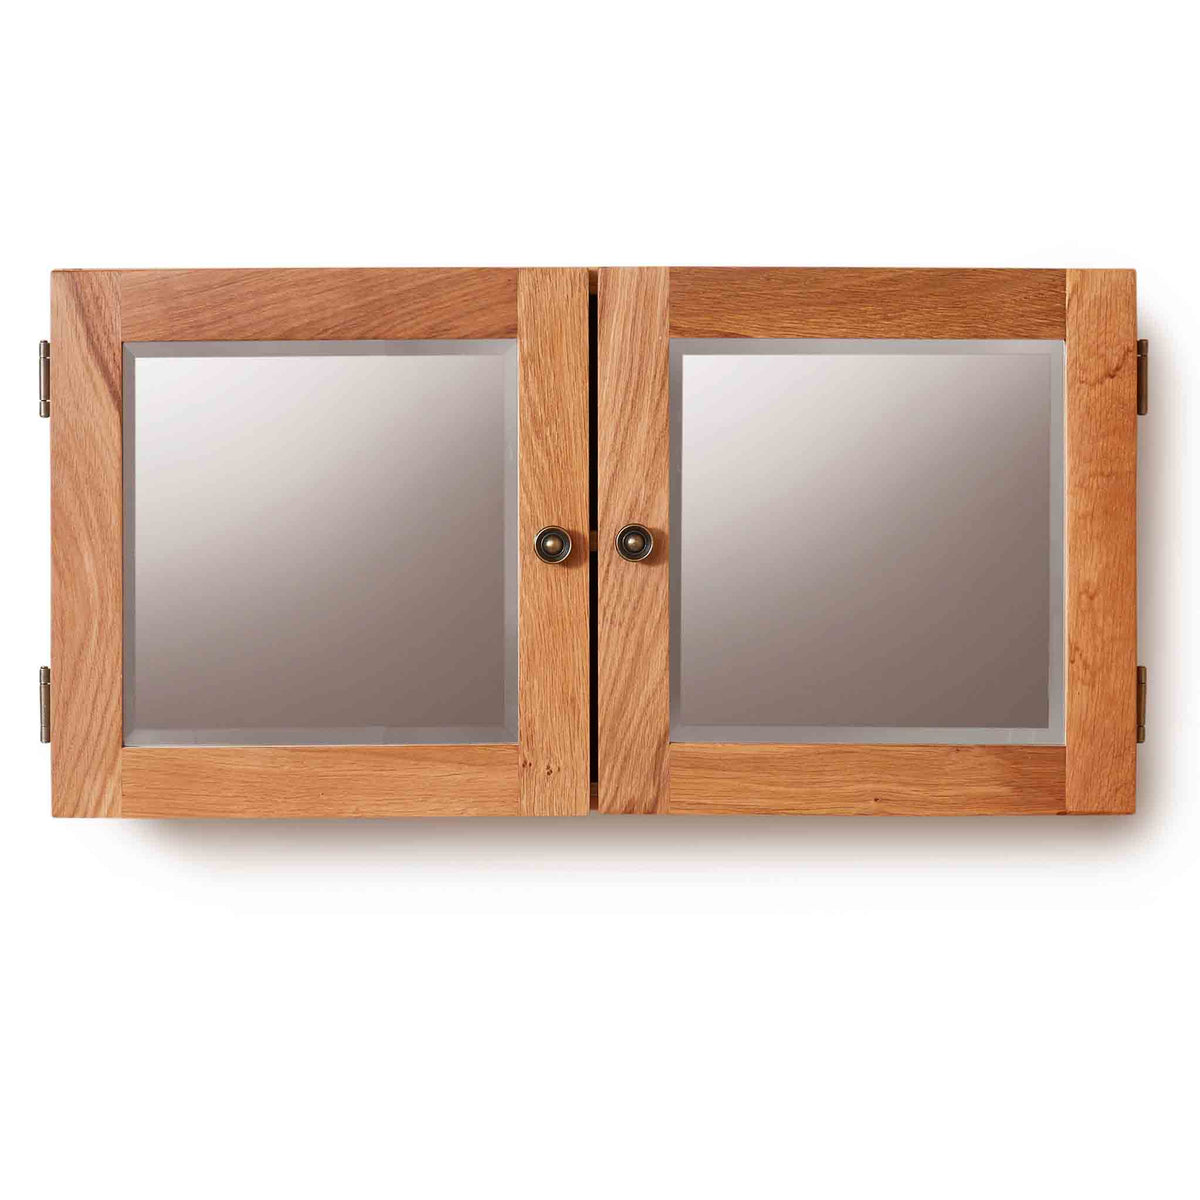 Mobel Bathroom 100% Solid Oak Mirrored Double Door Wall Cabinet on white background